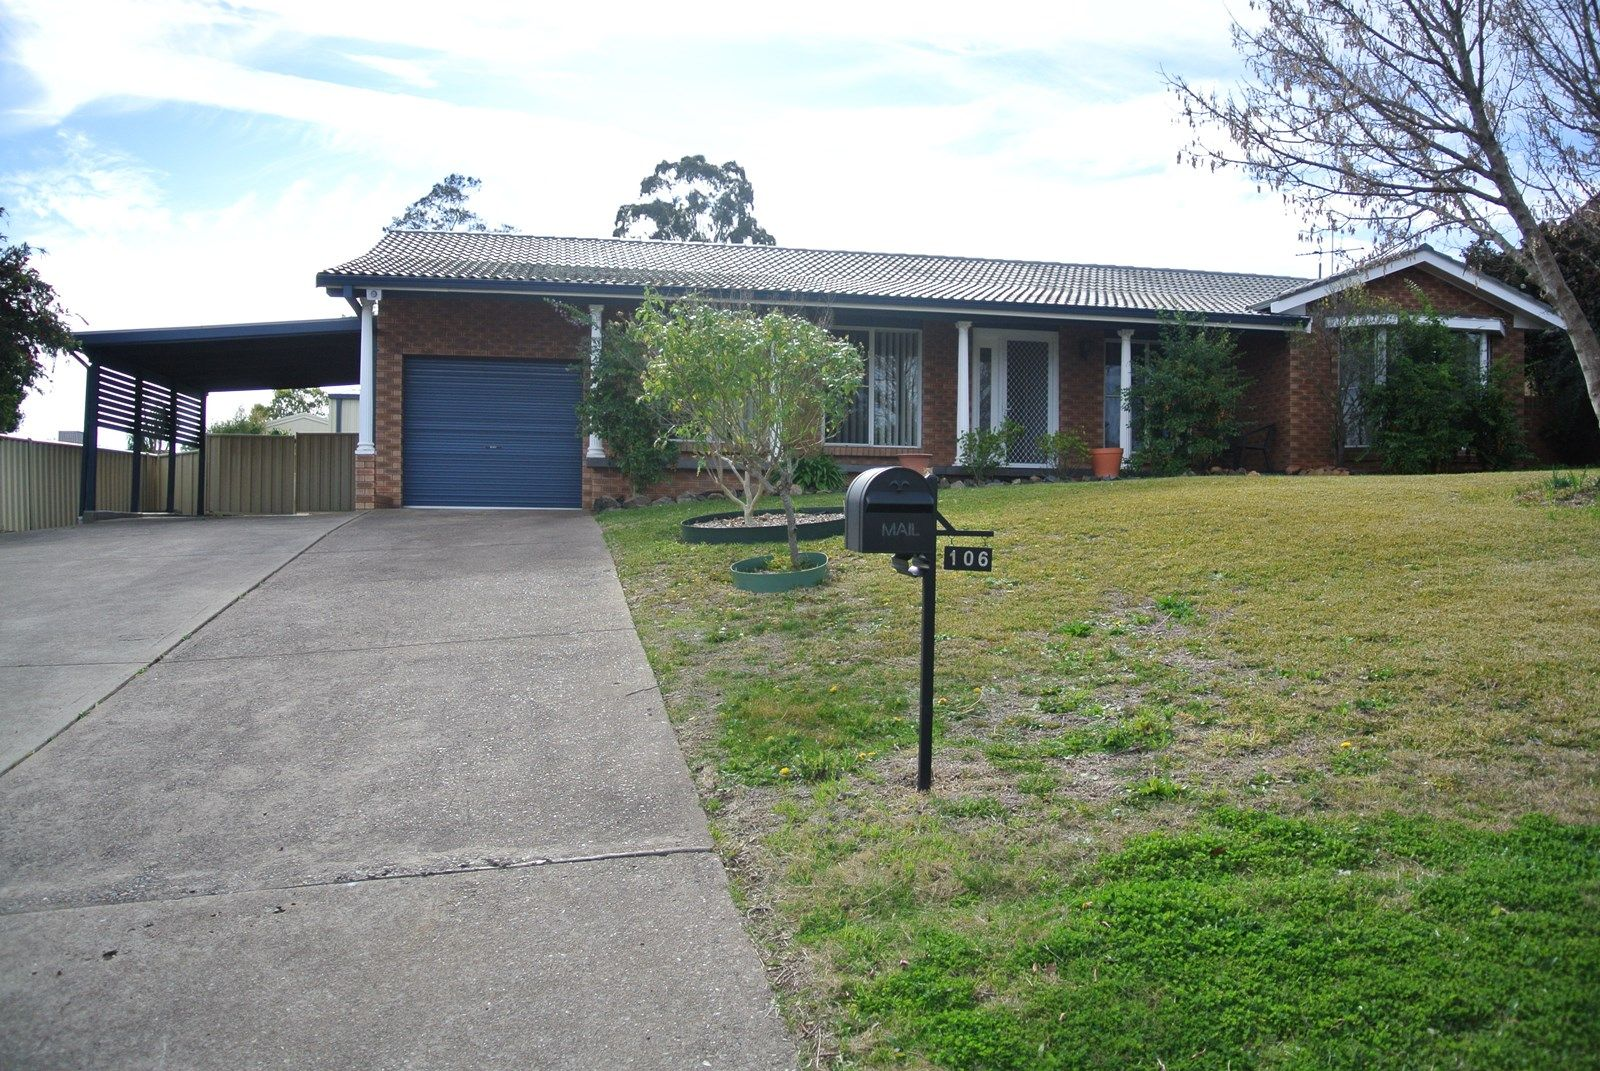 106 St Andrews St, Aberdeen NSW 2336, Image 1